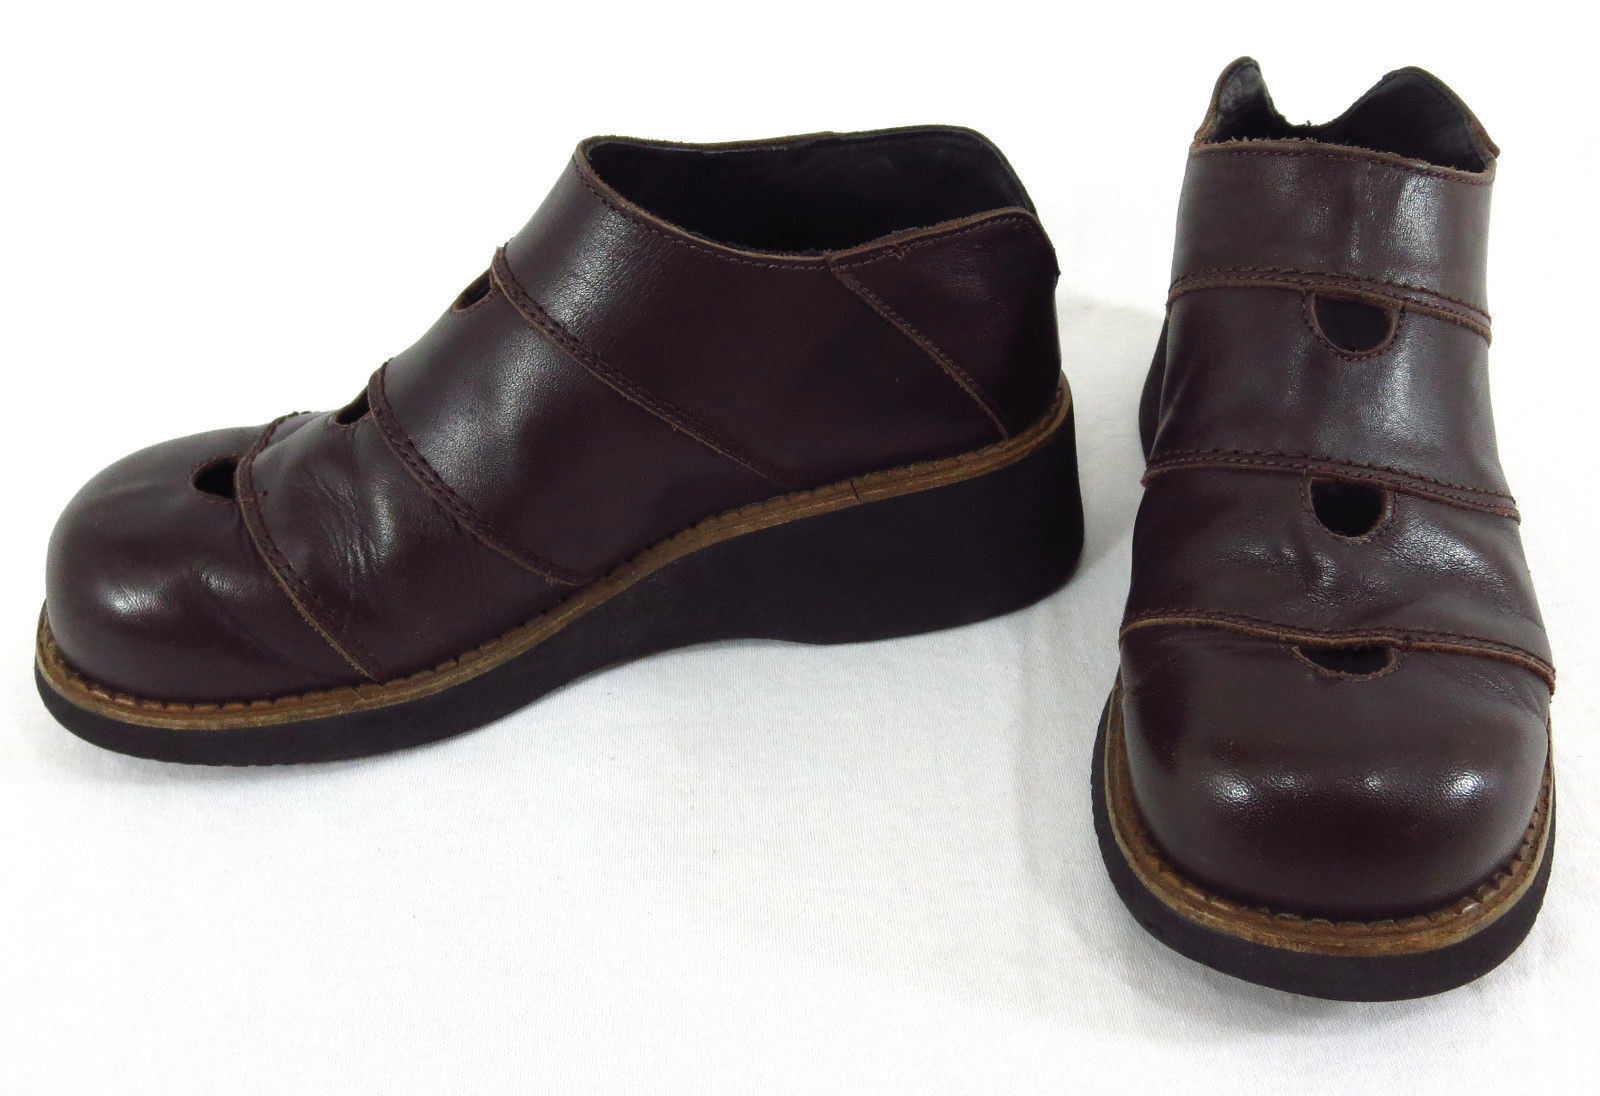 Louie shoes 6.5 US 36 EU Brown Leather Cut Out Wedge Thick Sole Slip On Spain